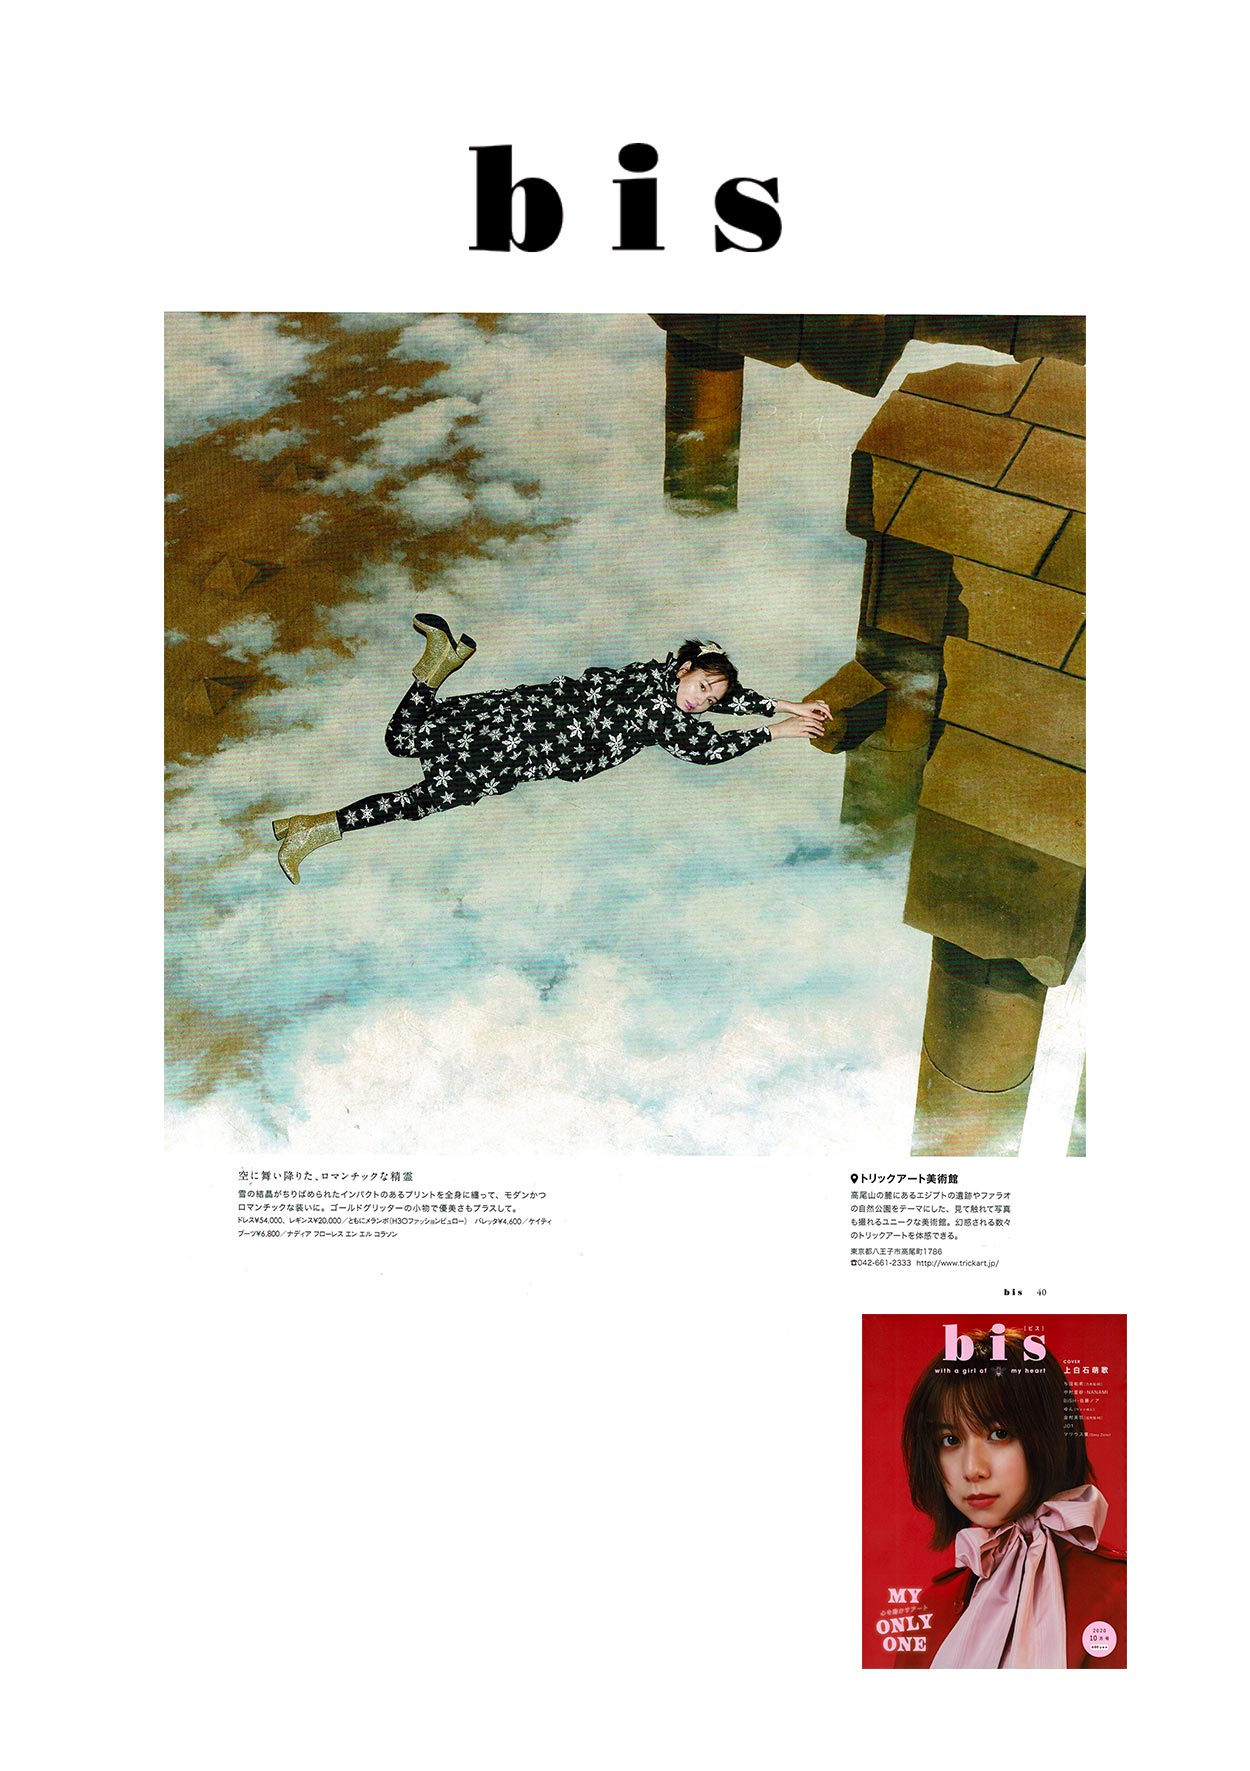 melampo press on bis magazine Japan - photo 2